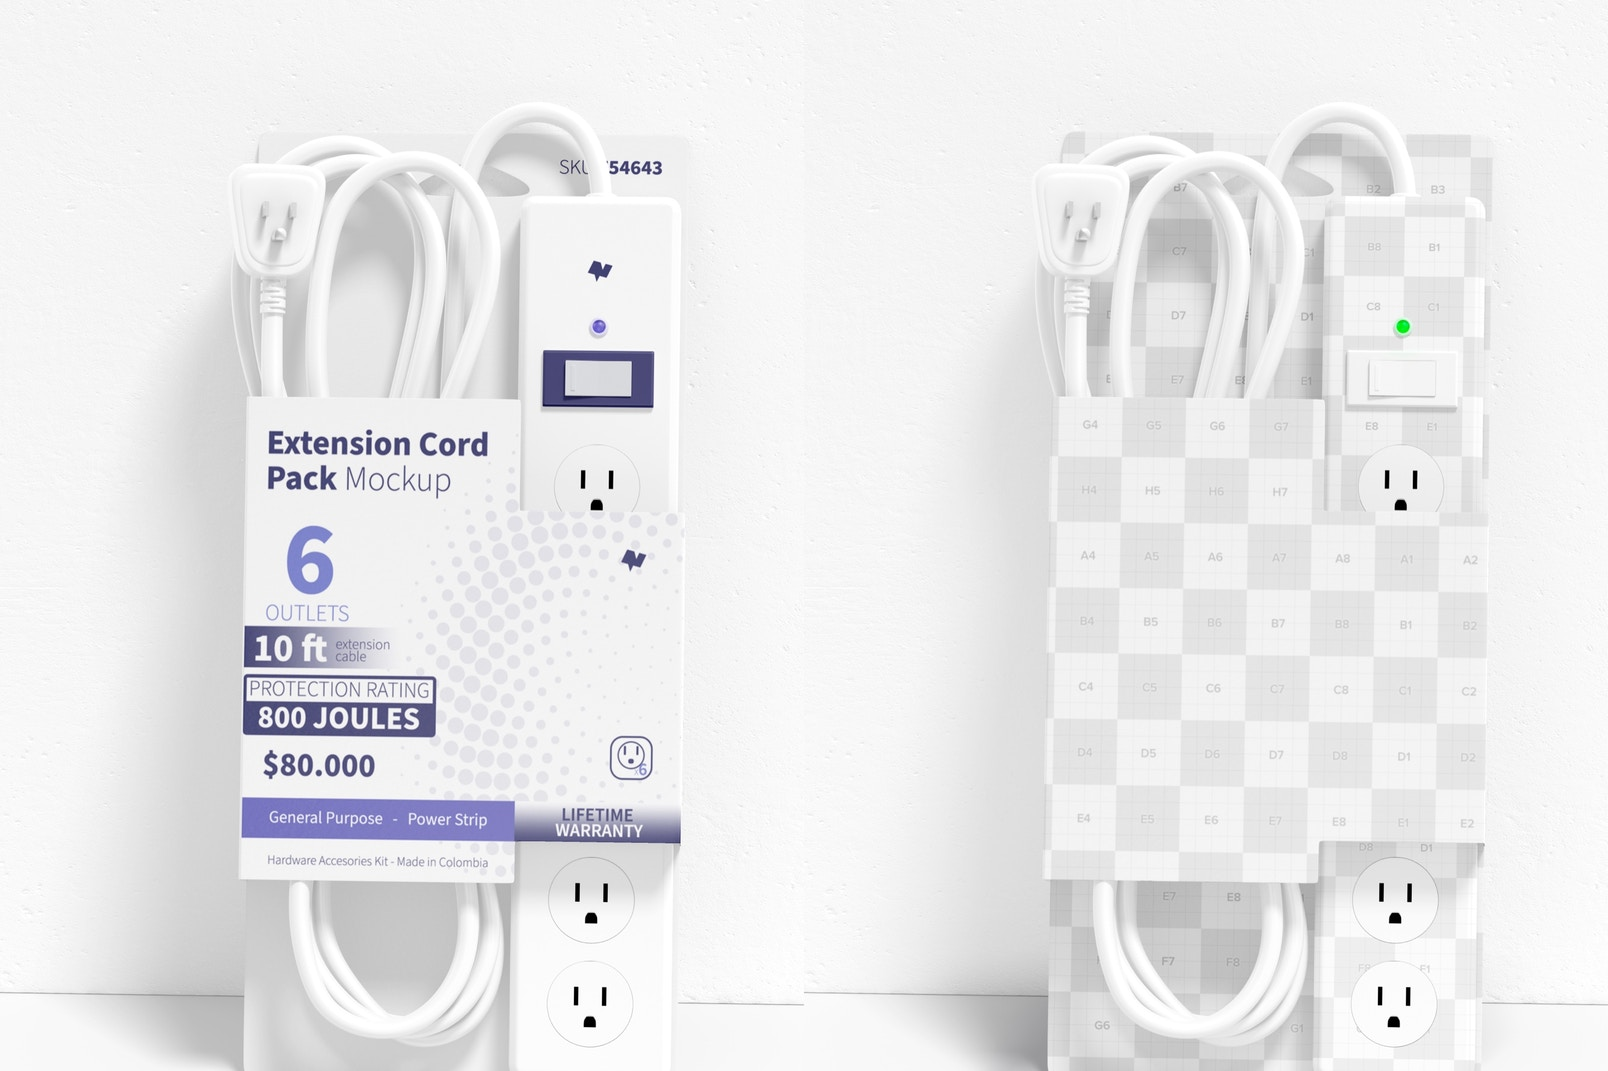 Extension Cord Pack Mockup, Leaned